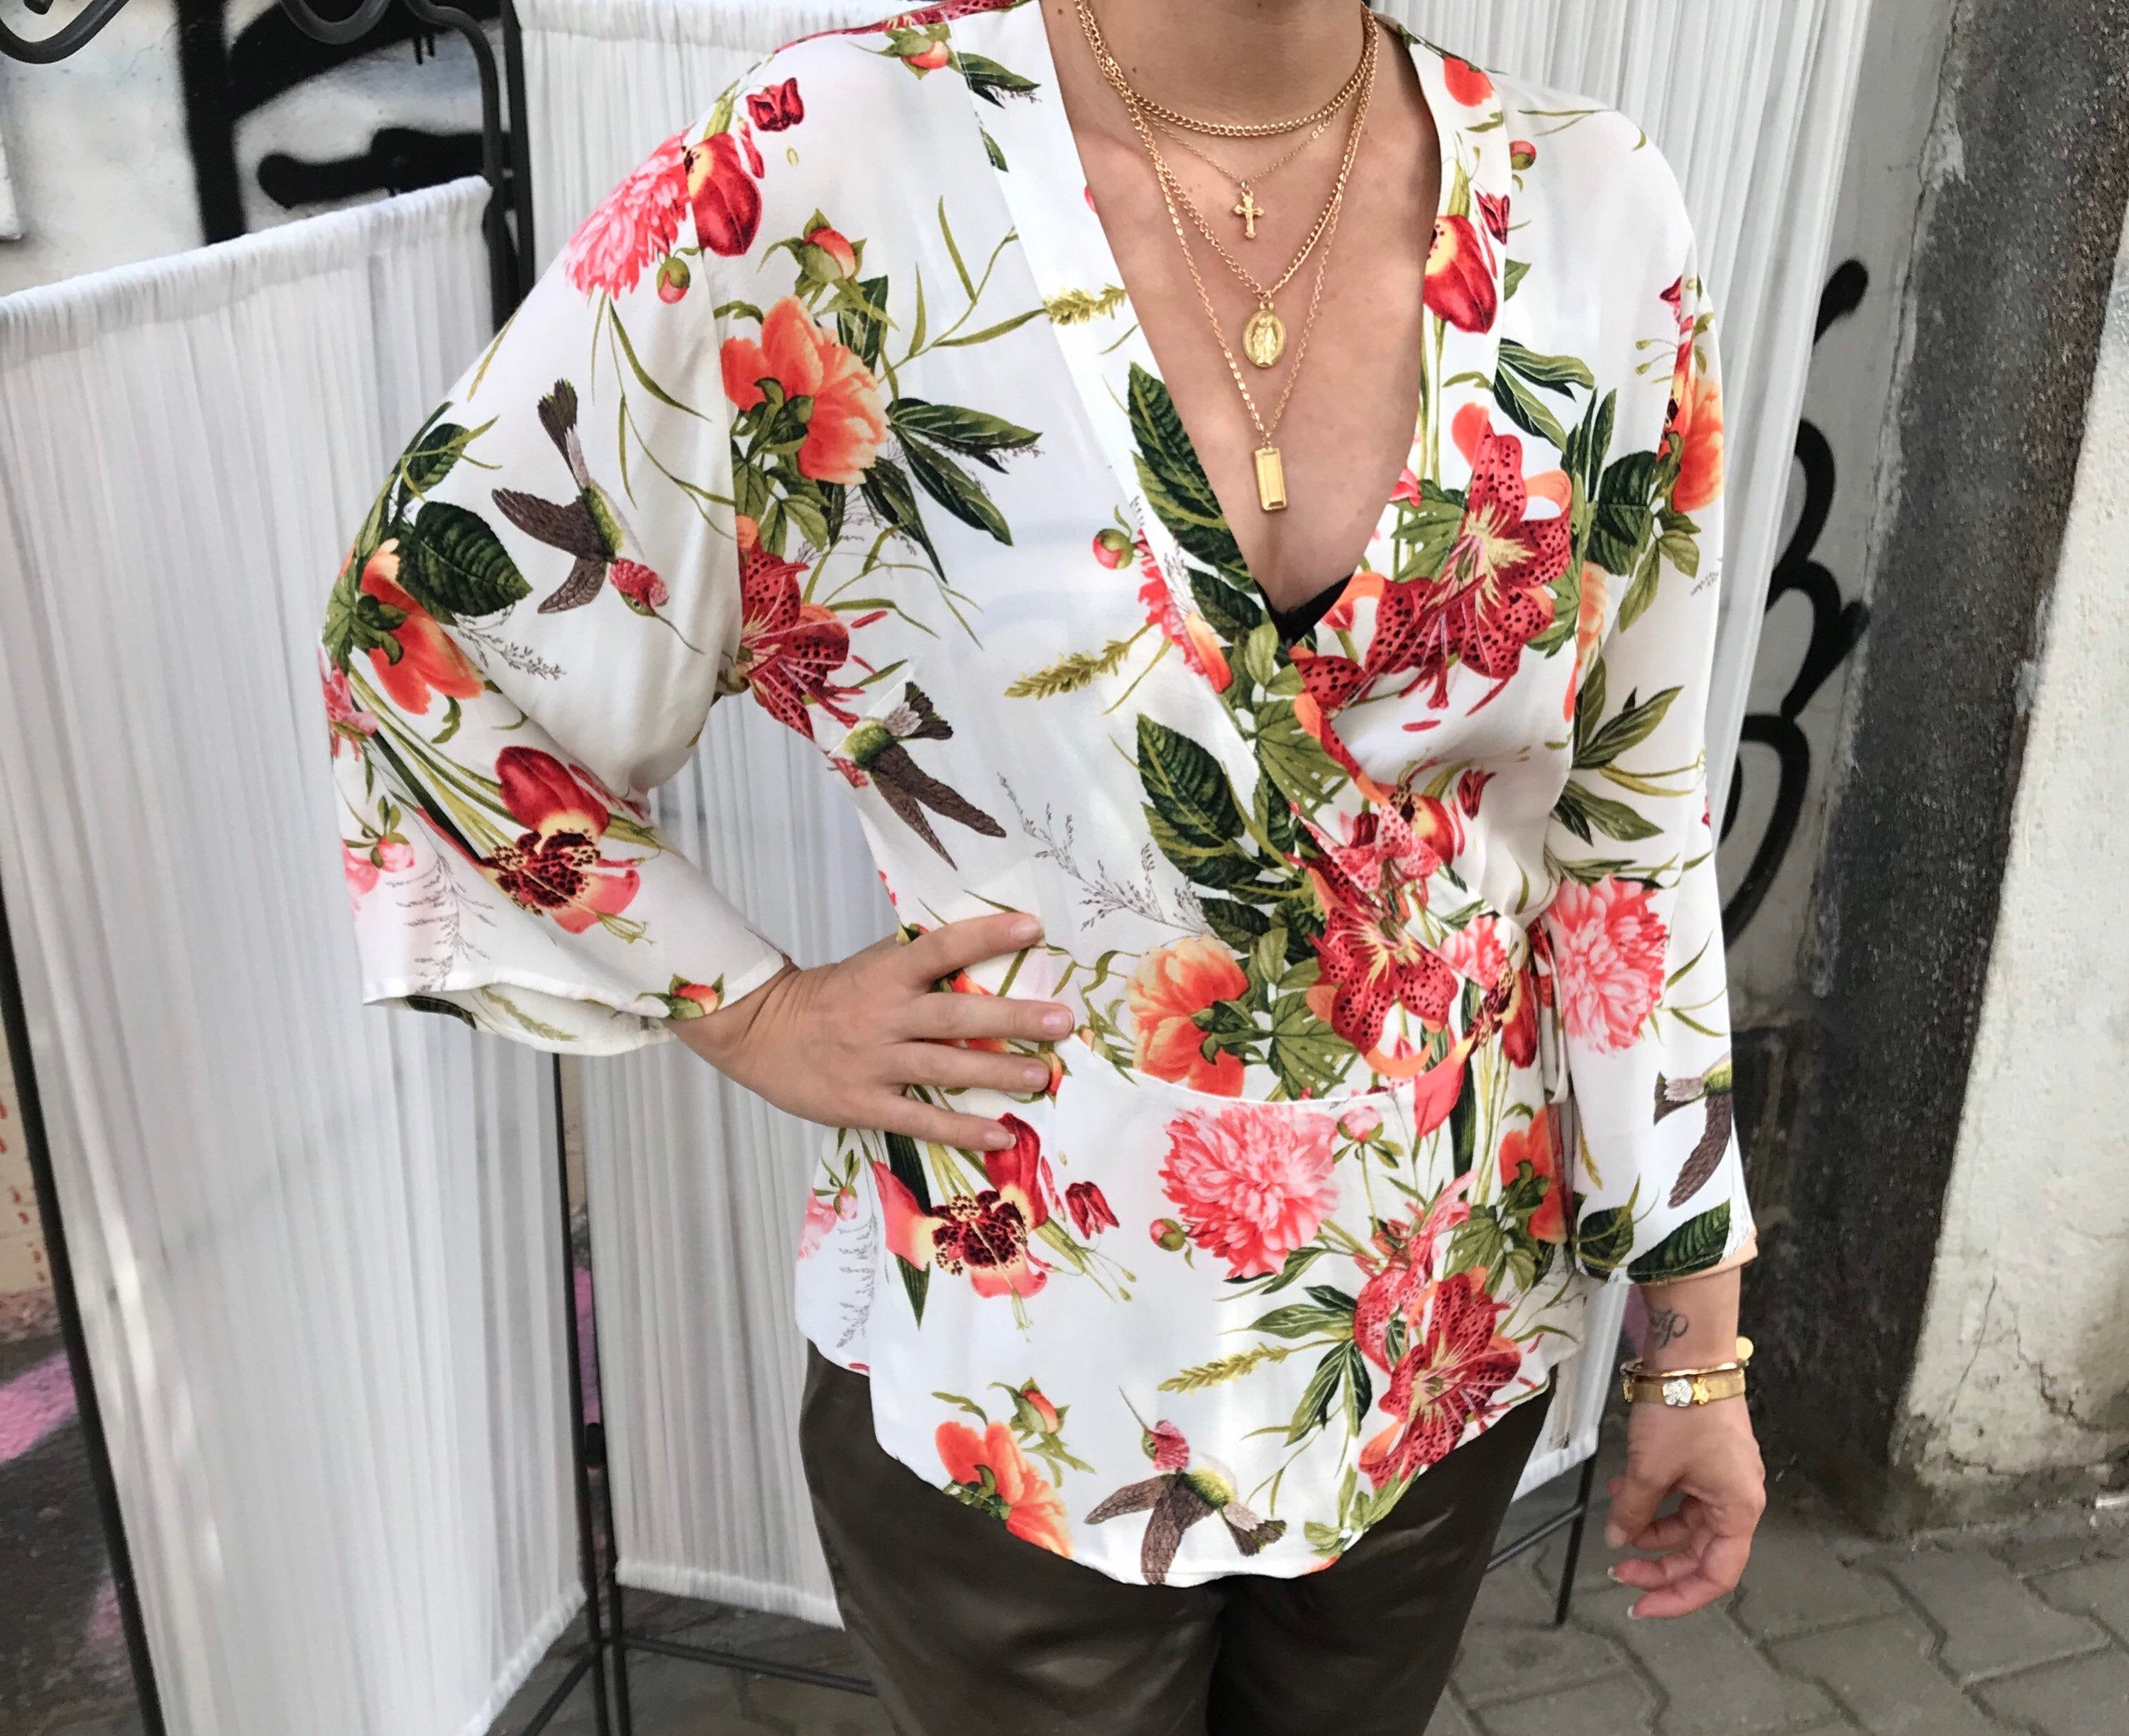 Vintage Flowers And Birds Pattern Shirt Wrap Up Blouse Etsy In 2020 Shirt Pattern Vintage Shirts Viscose Blouse